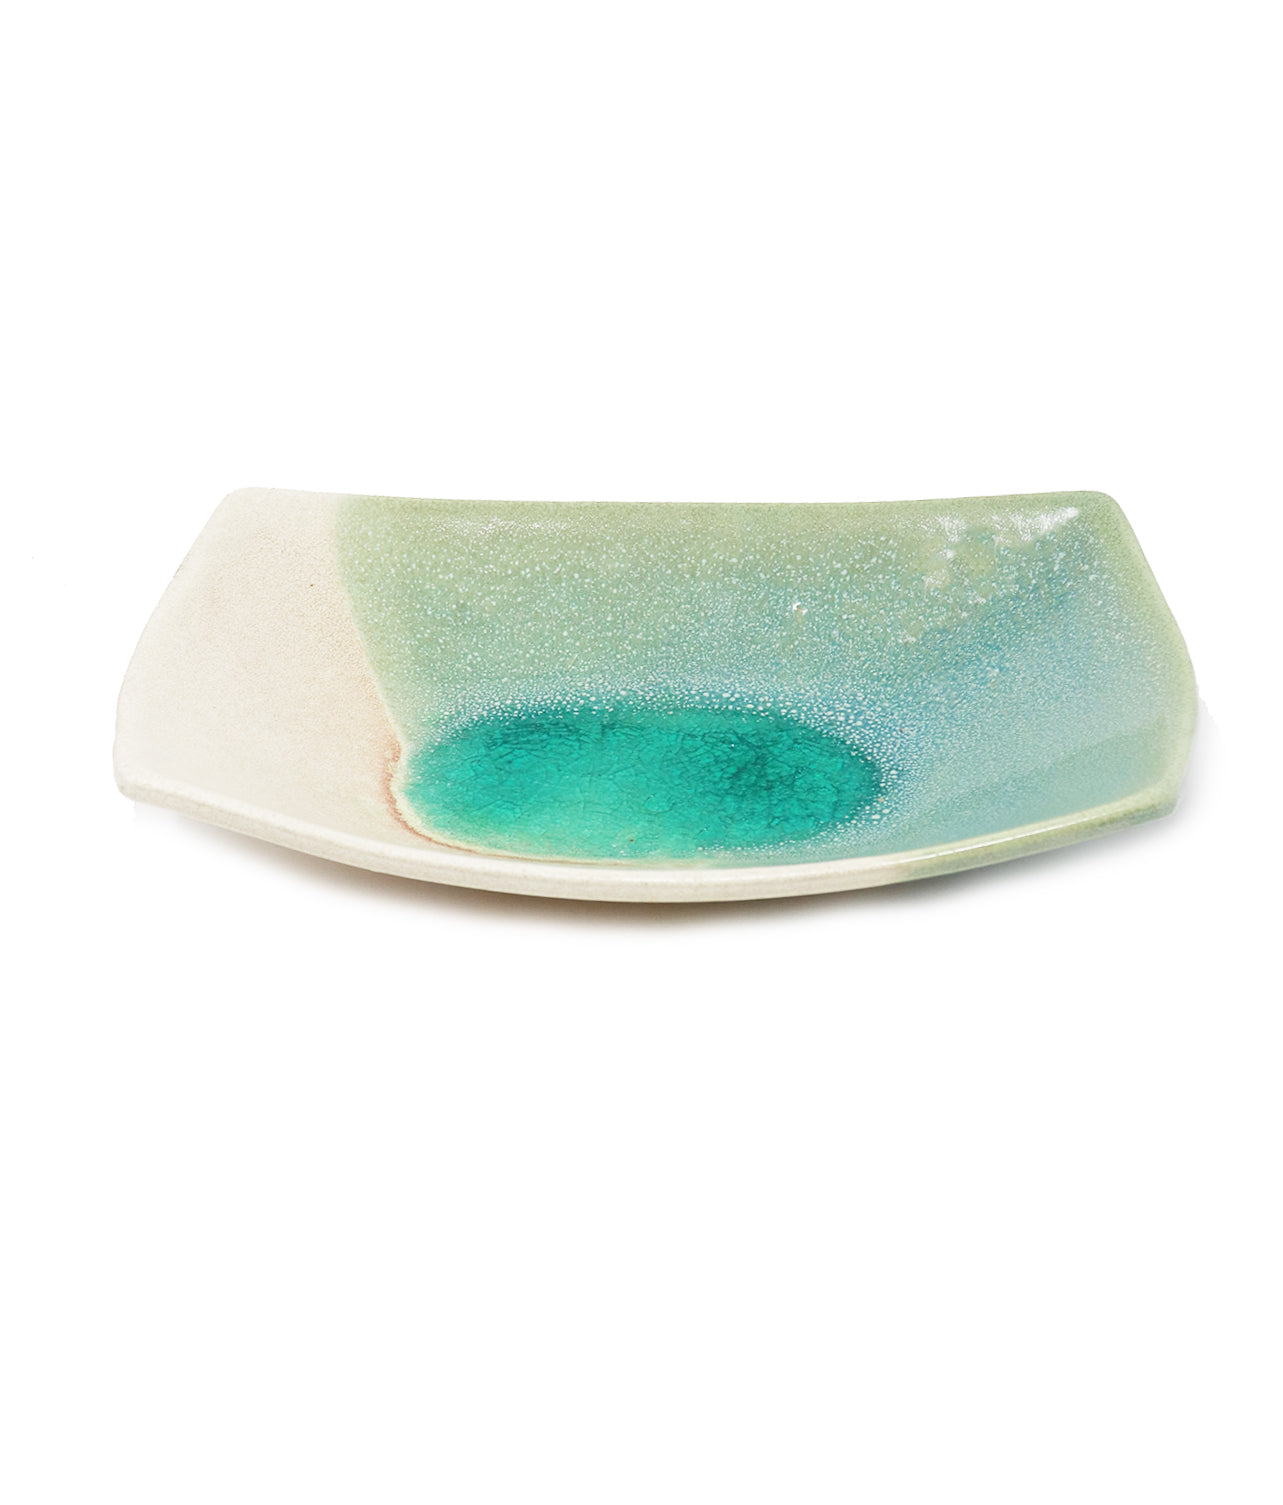 Satterfield Rectangle Bowl with Glass - Gabrielle's Biloxi